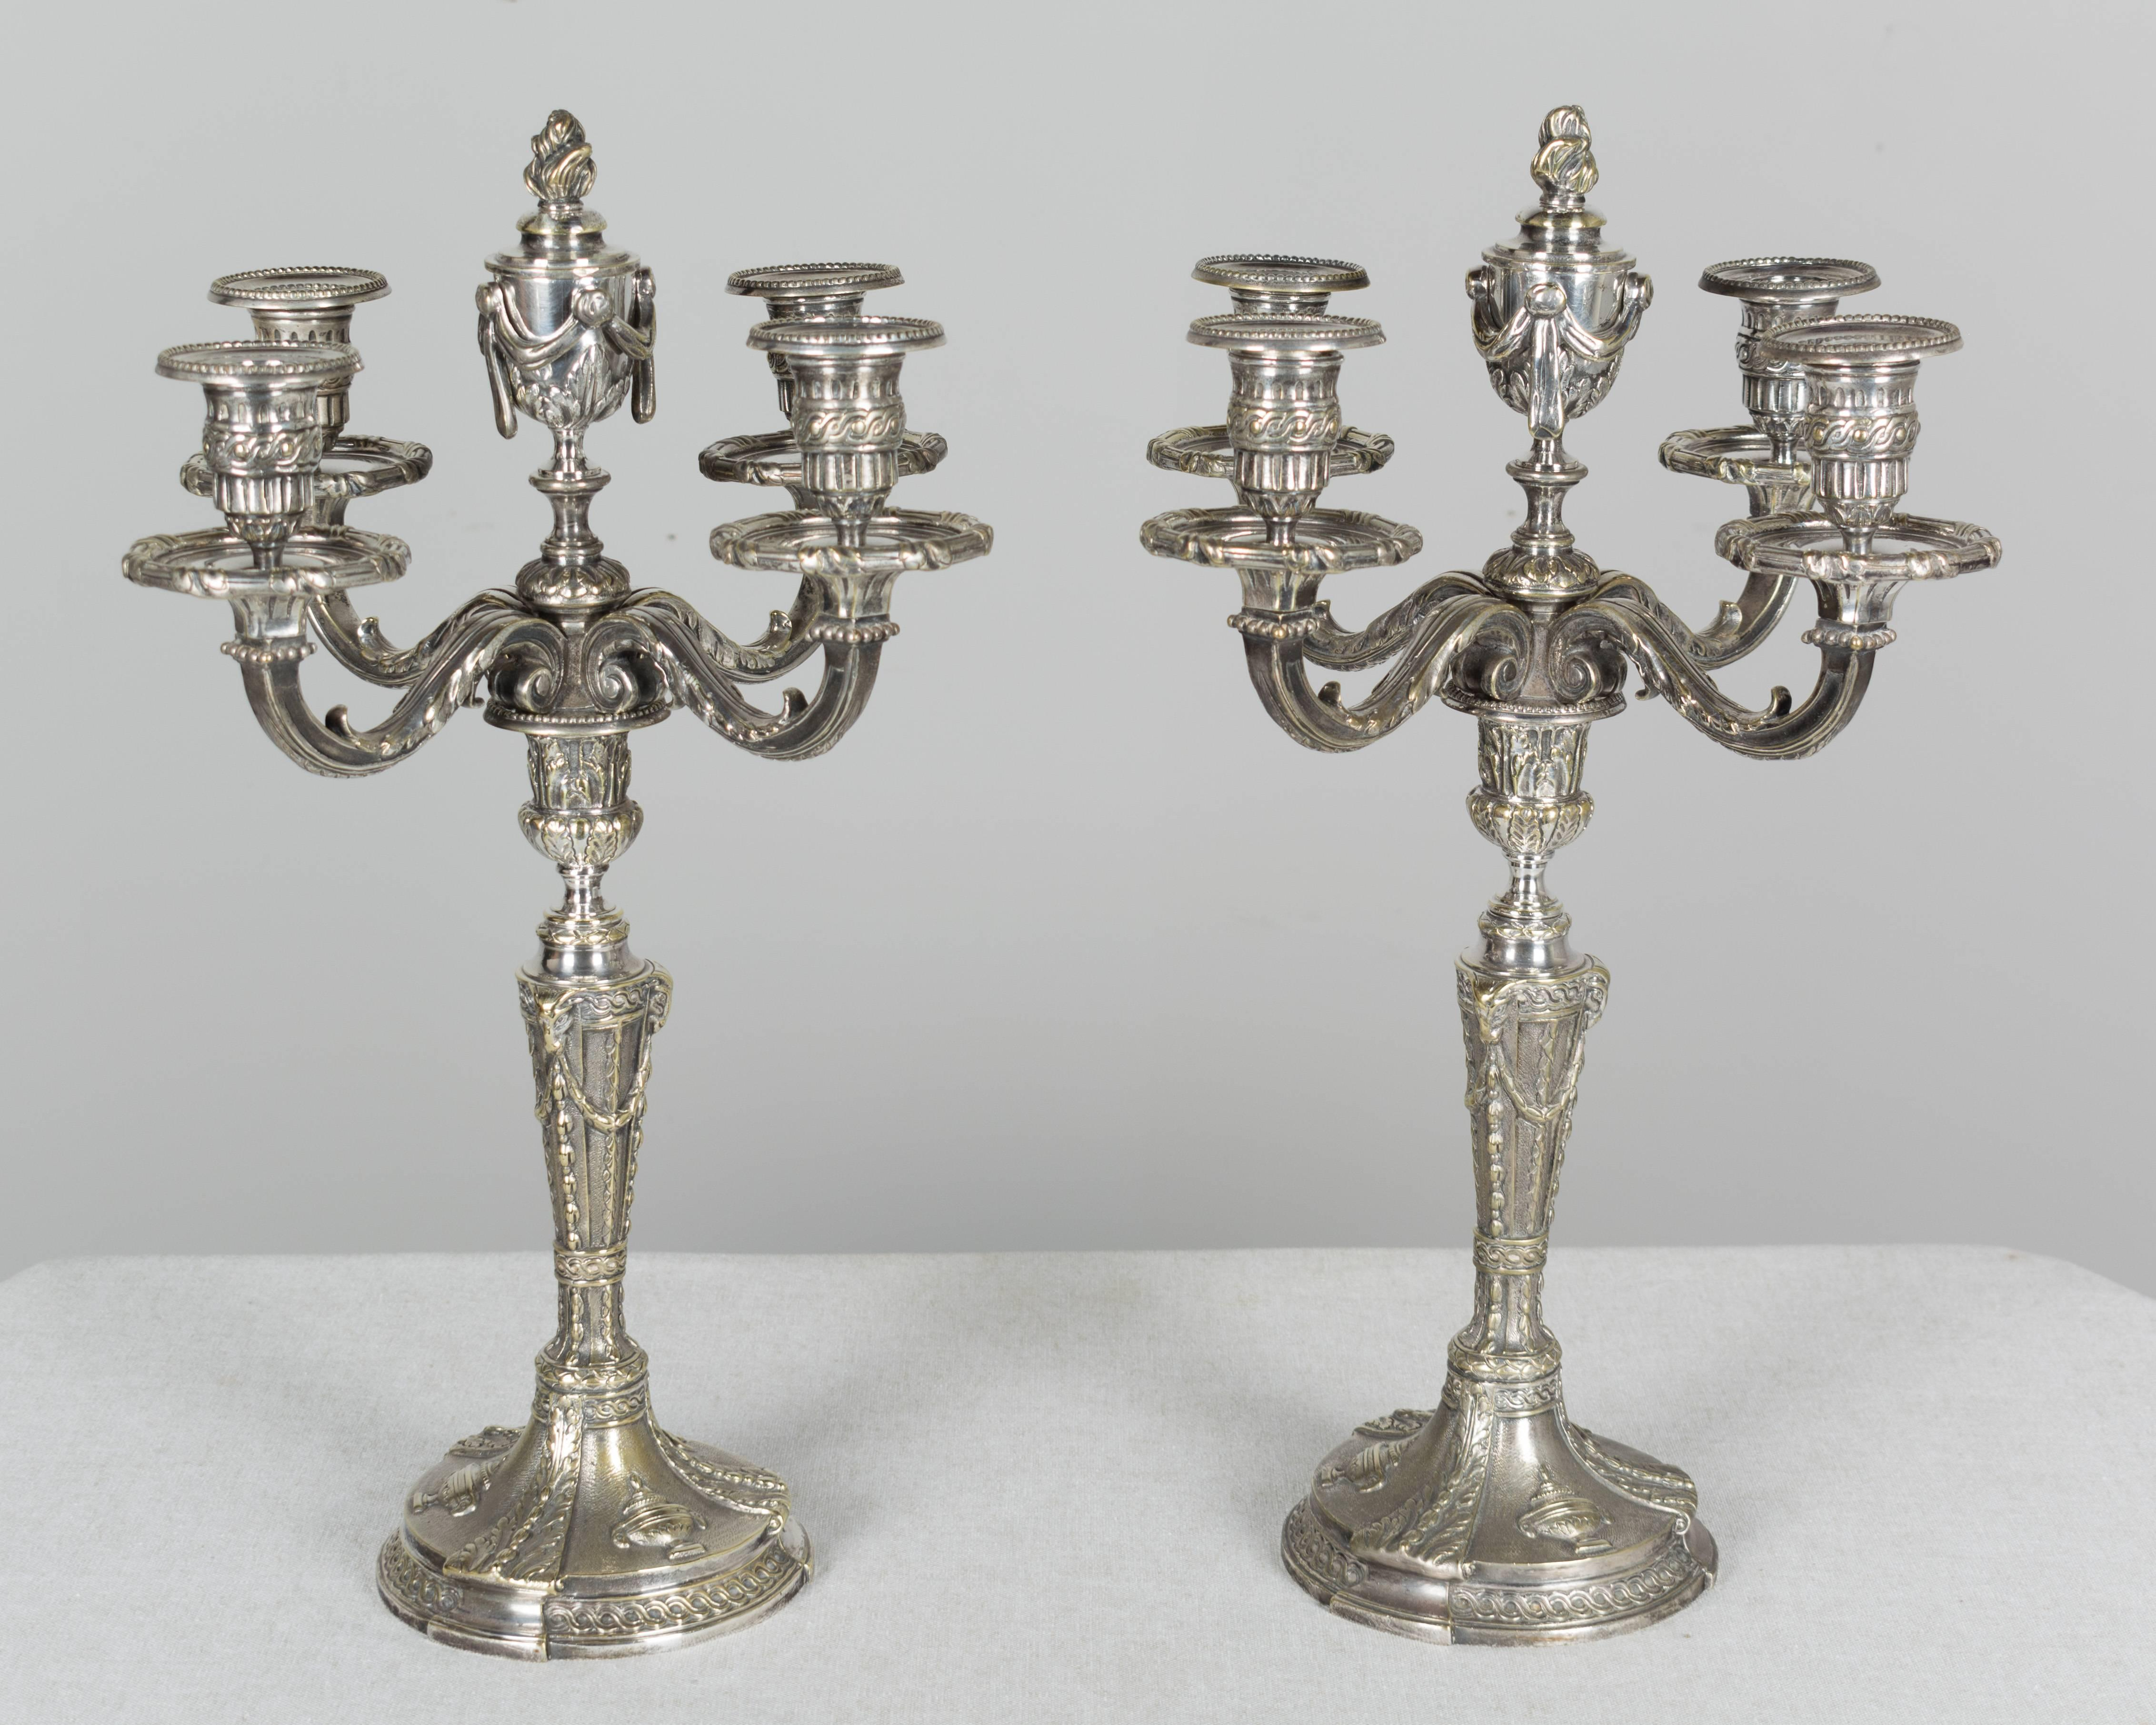 Louis XV Pair of 19th Century French Silver Plated Candelabra For Sale  sc 1 st  1stDibs & Pair of 19th Century French Silver Plated Candelabra For Sale at 1stdibs